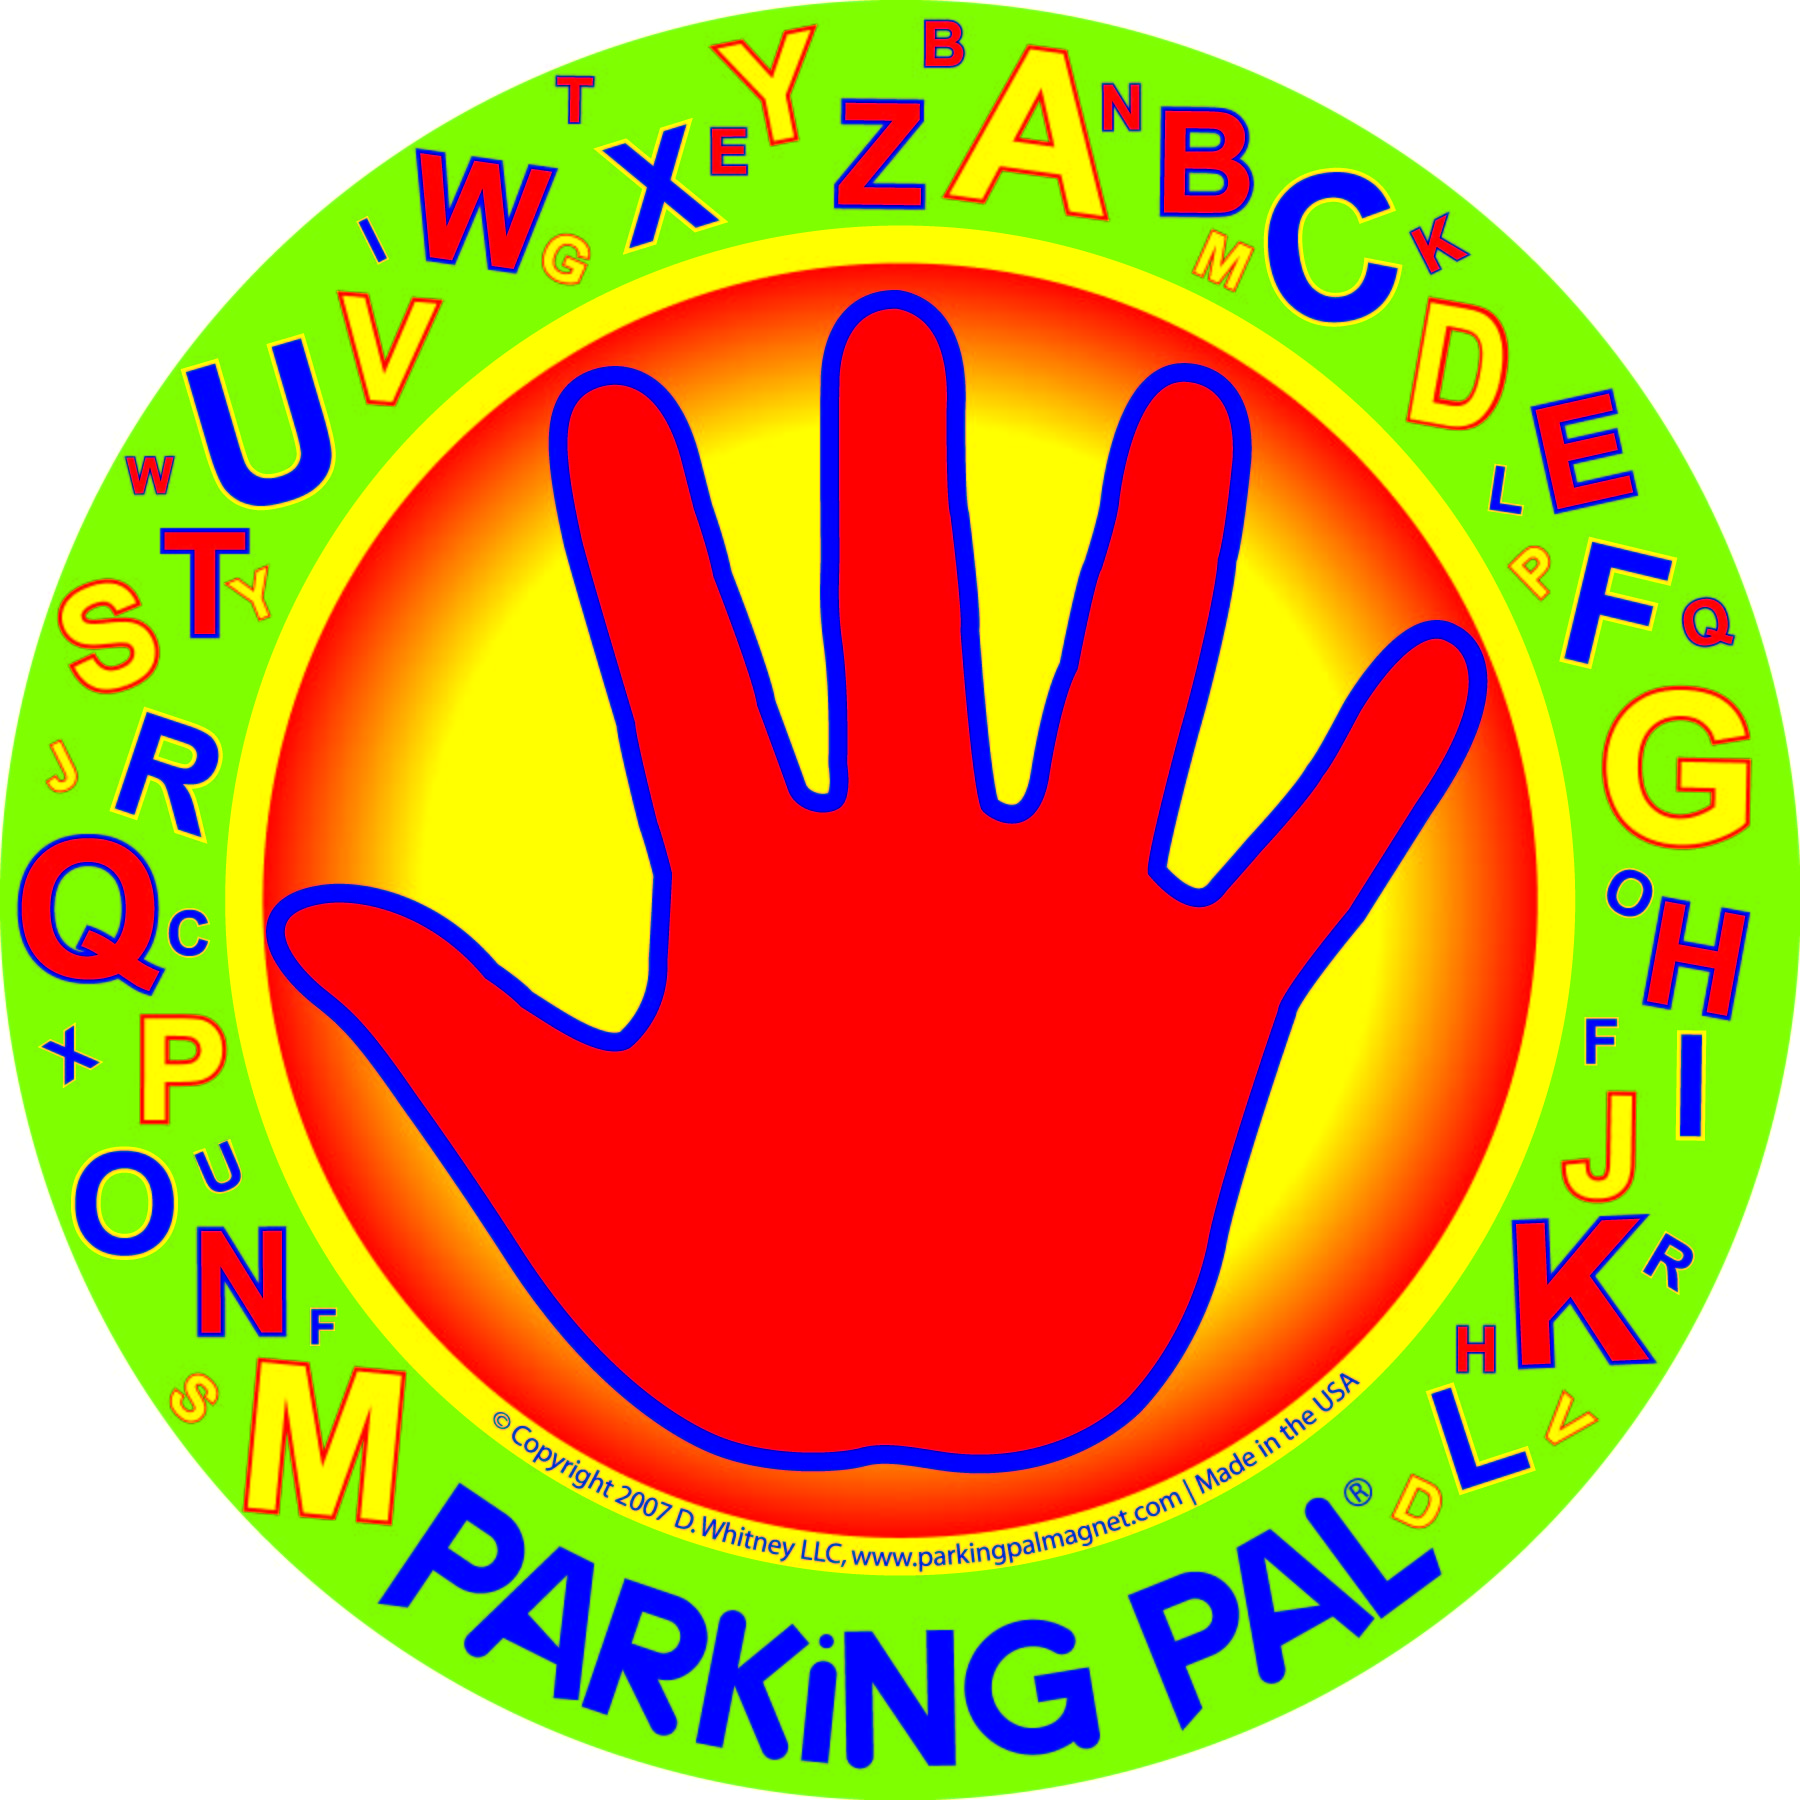 Parking Pal Magnet - AlphaPal